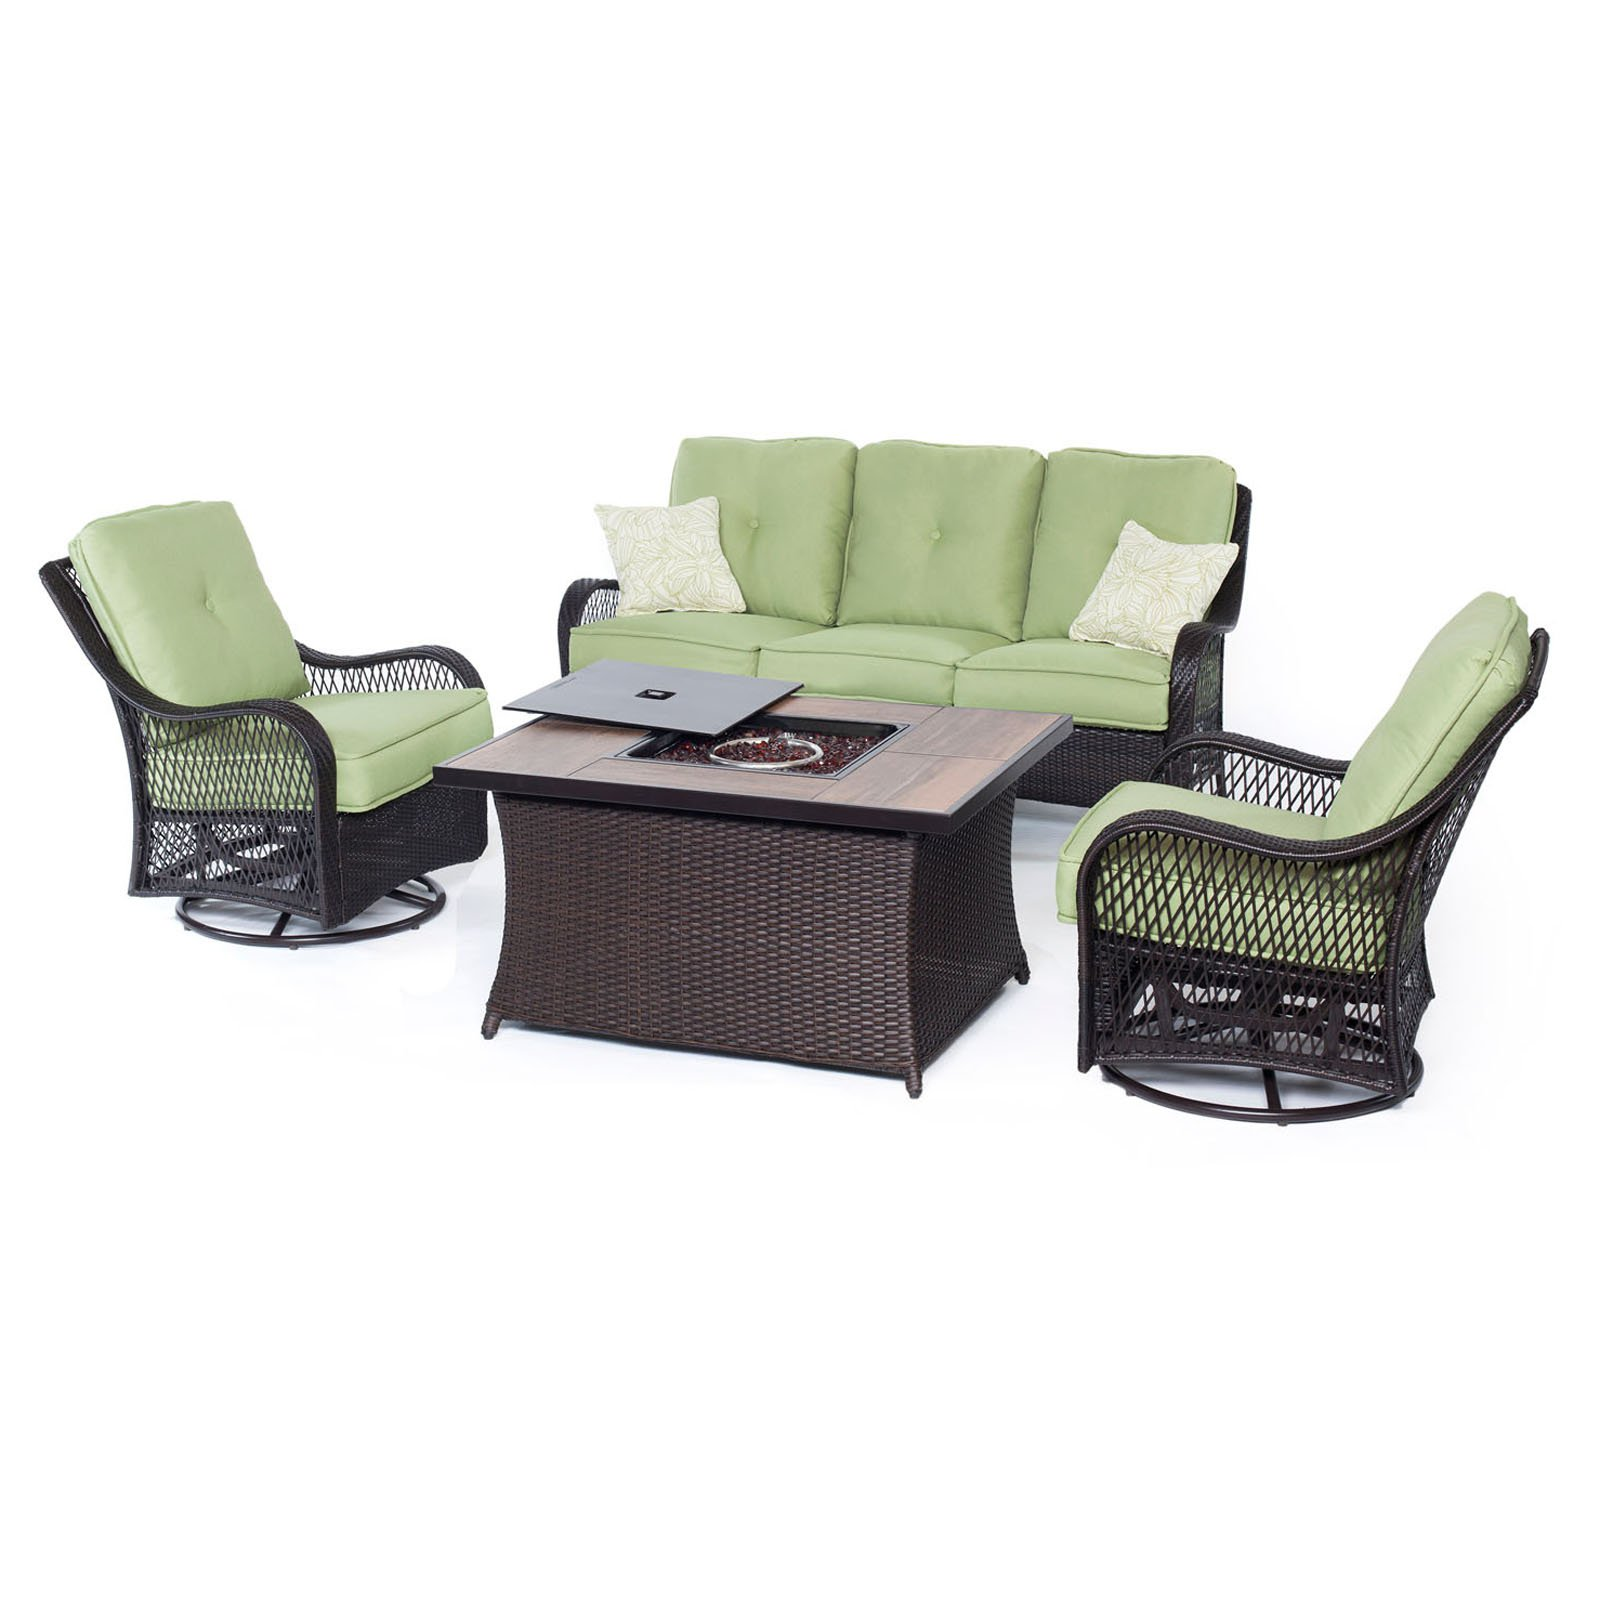 Hanover Orleans 4-Piece Woven Fire Pit Lounge Set with Glazed Faux-Wood Tile Top